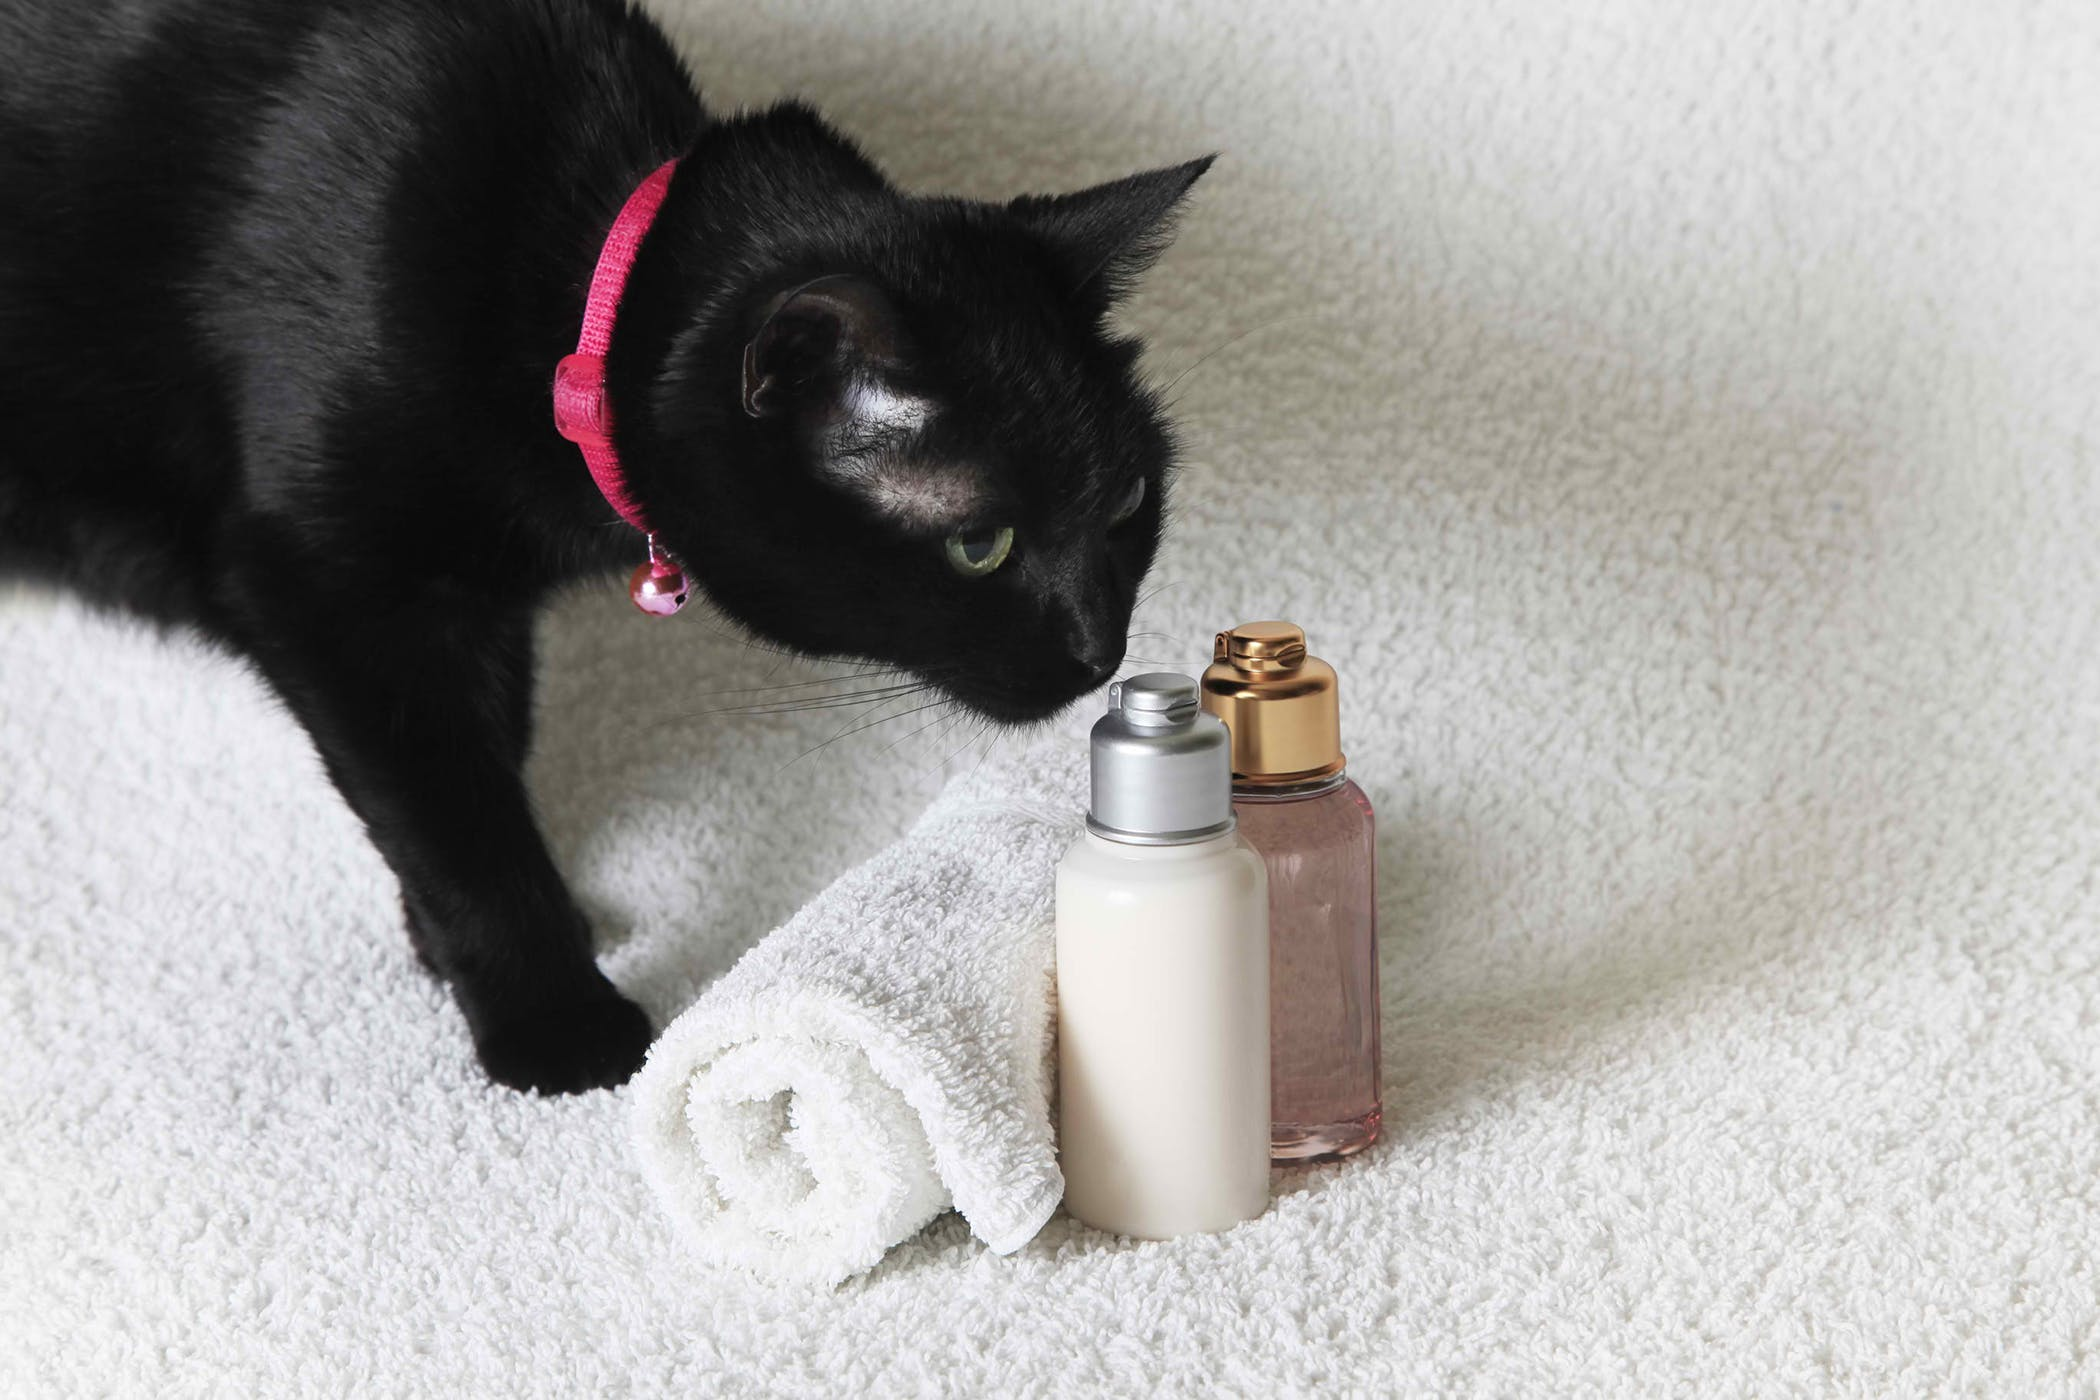 Medicated Shampoo or Dip in Cats - Procedure, Efficacy